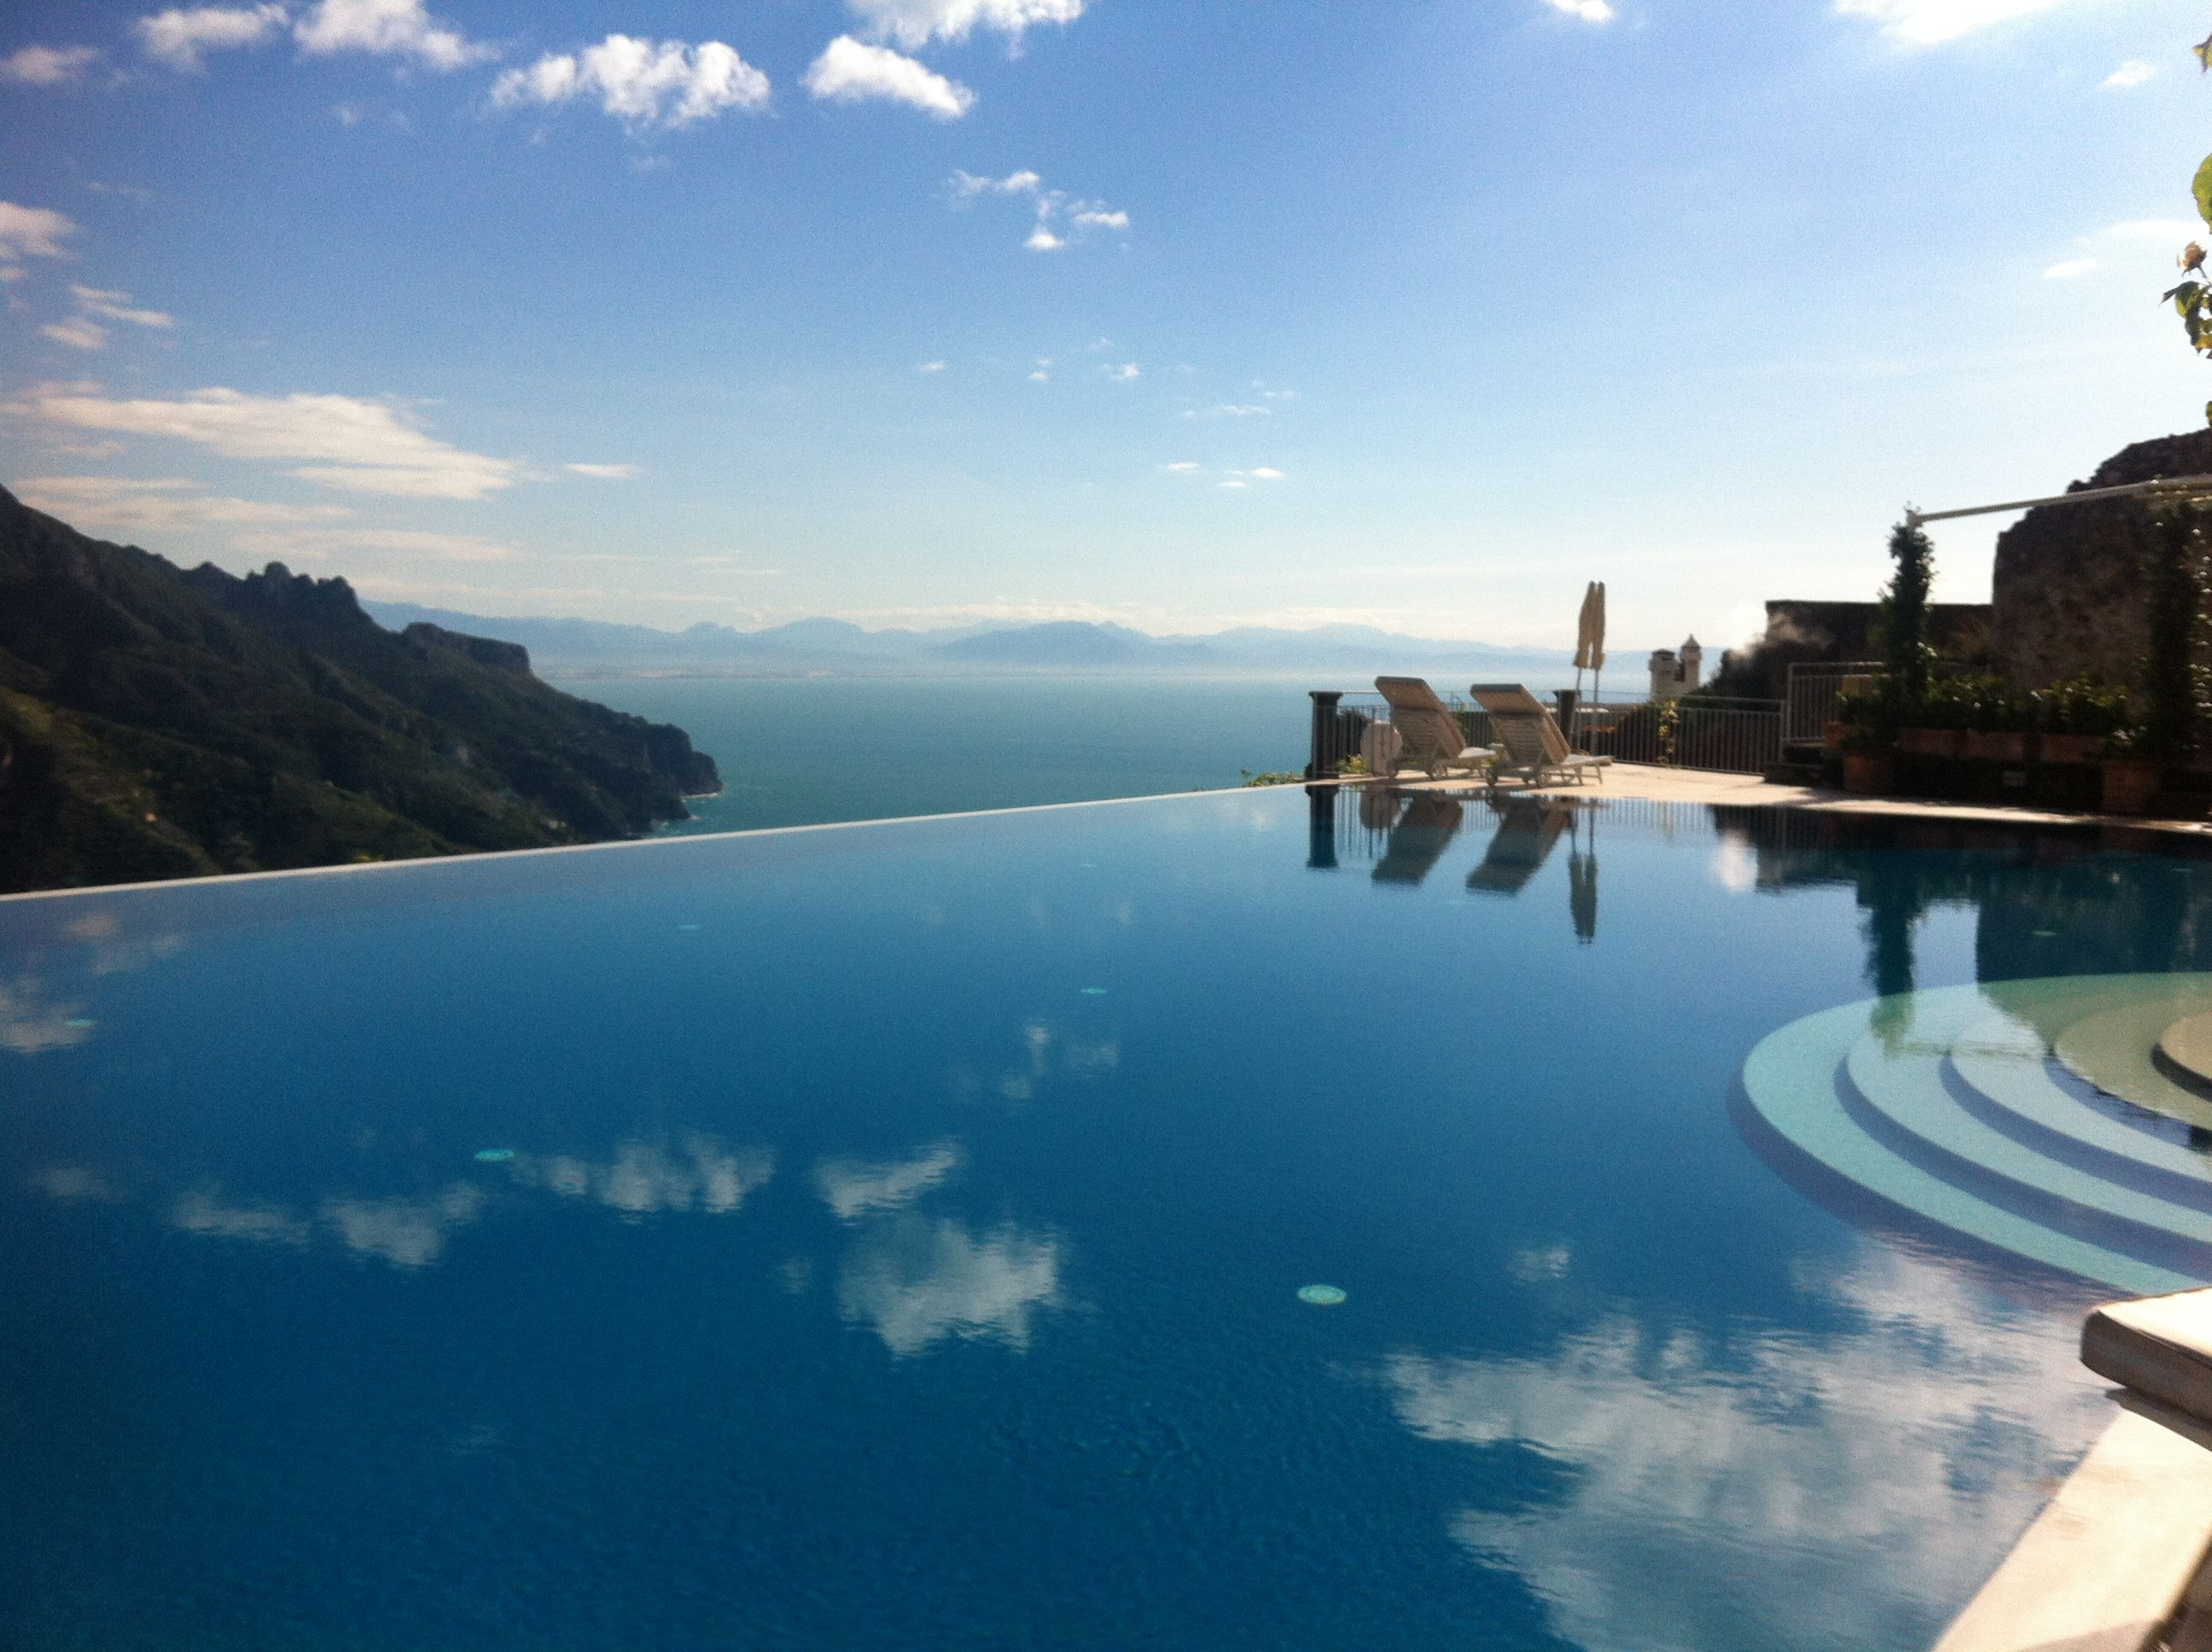 Hotel Caruso Ravello 360degree Views From The Fabulous Infinity Pool Fave Hotels